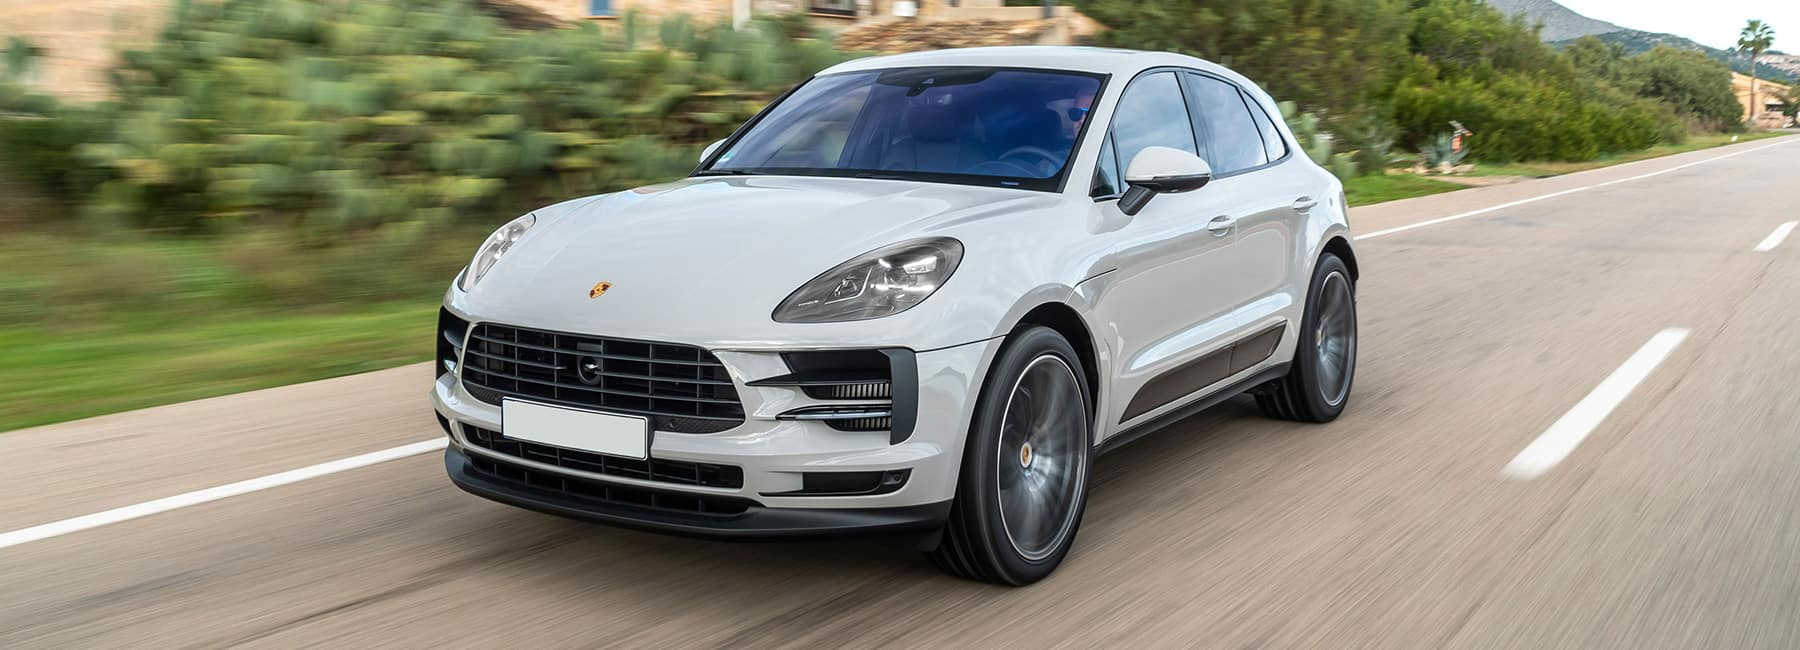 2019 Porsche Macan Review Specs Price Sewickley Porsche In Pa